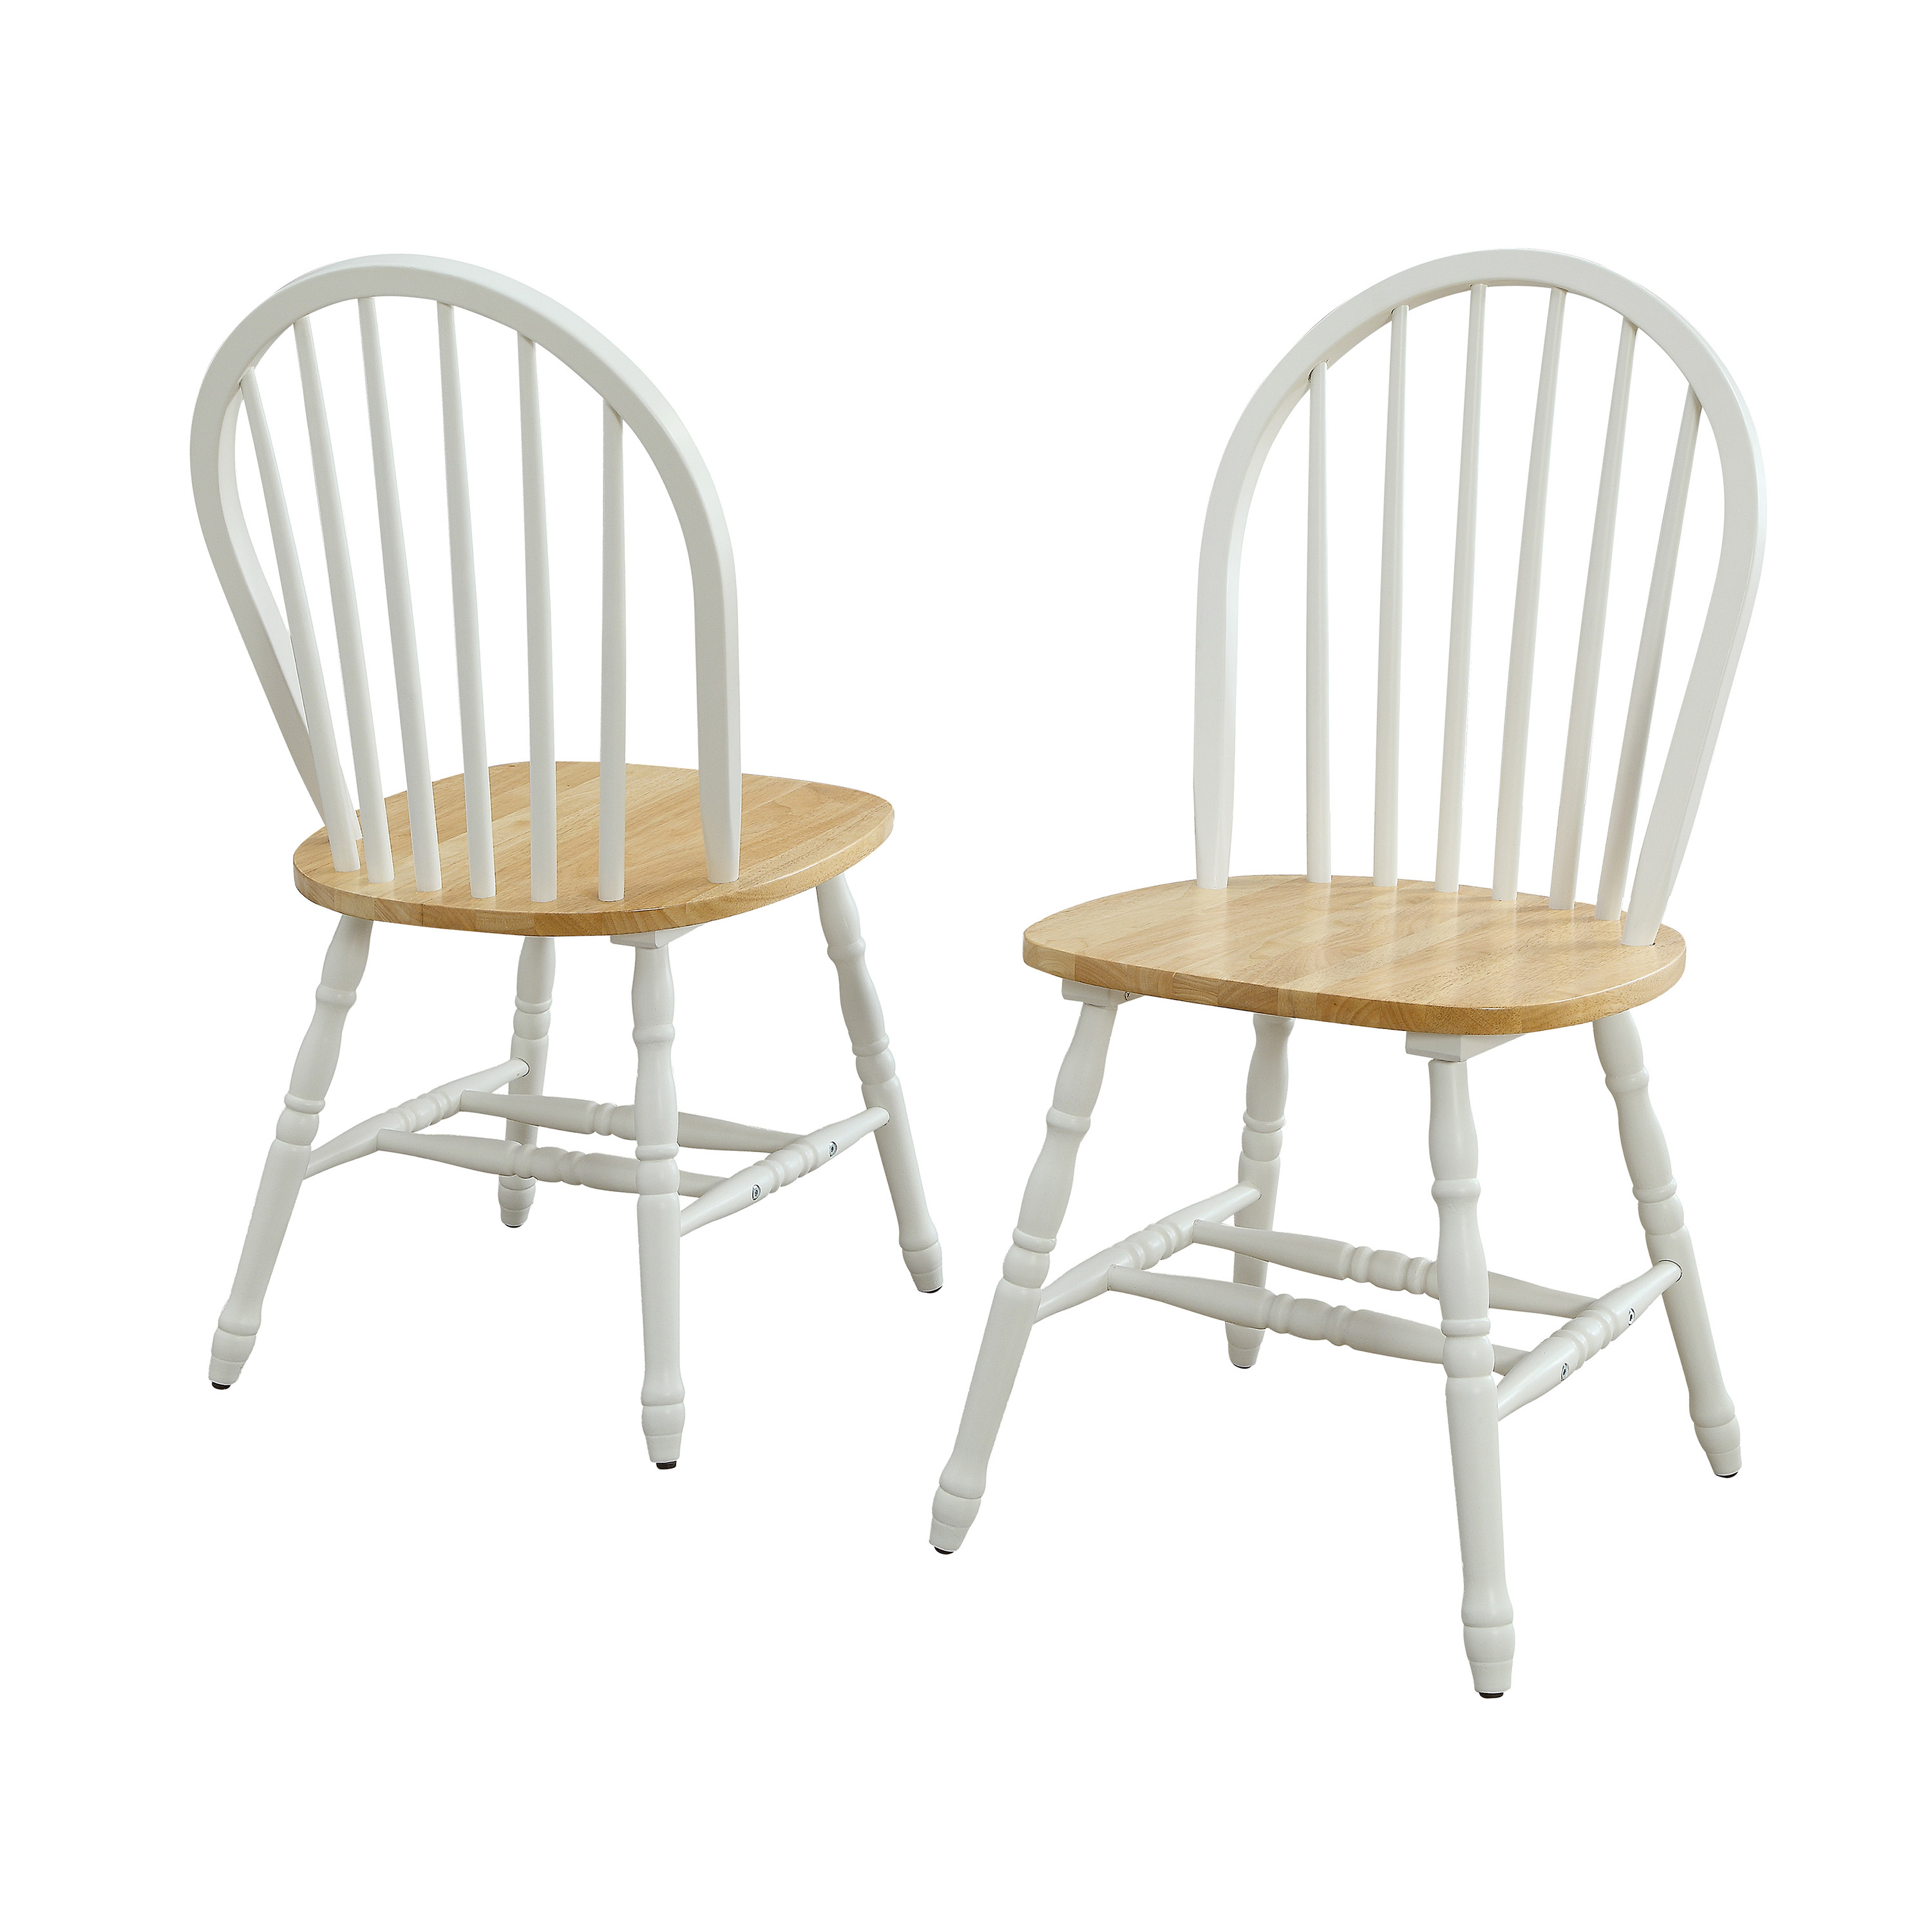 White Wooden Dining Chairs Better Homes And Gardens Autumn Lane Windsor Solid Wood Dining Chairs White And Oak Set Of 2